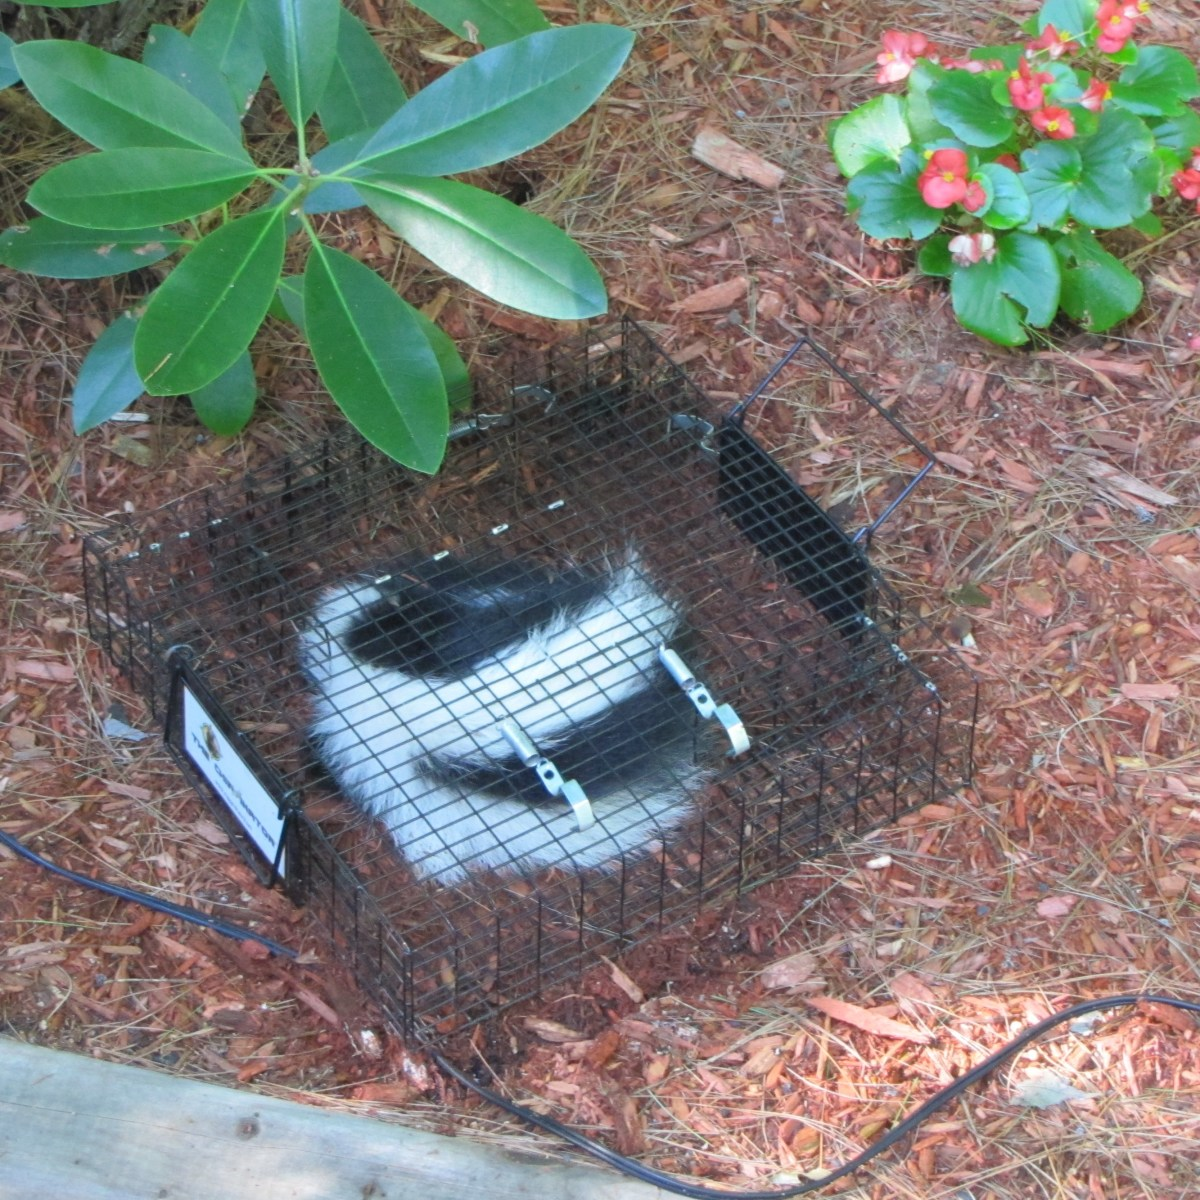 Last summer we acccidentally trapped a young skunk in the Chipmunkinator. Now, I close it at night to prevent this from happening. I was amazed that this larger animal could get in through the chipmunk sized entry.